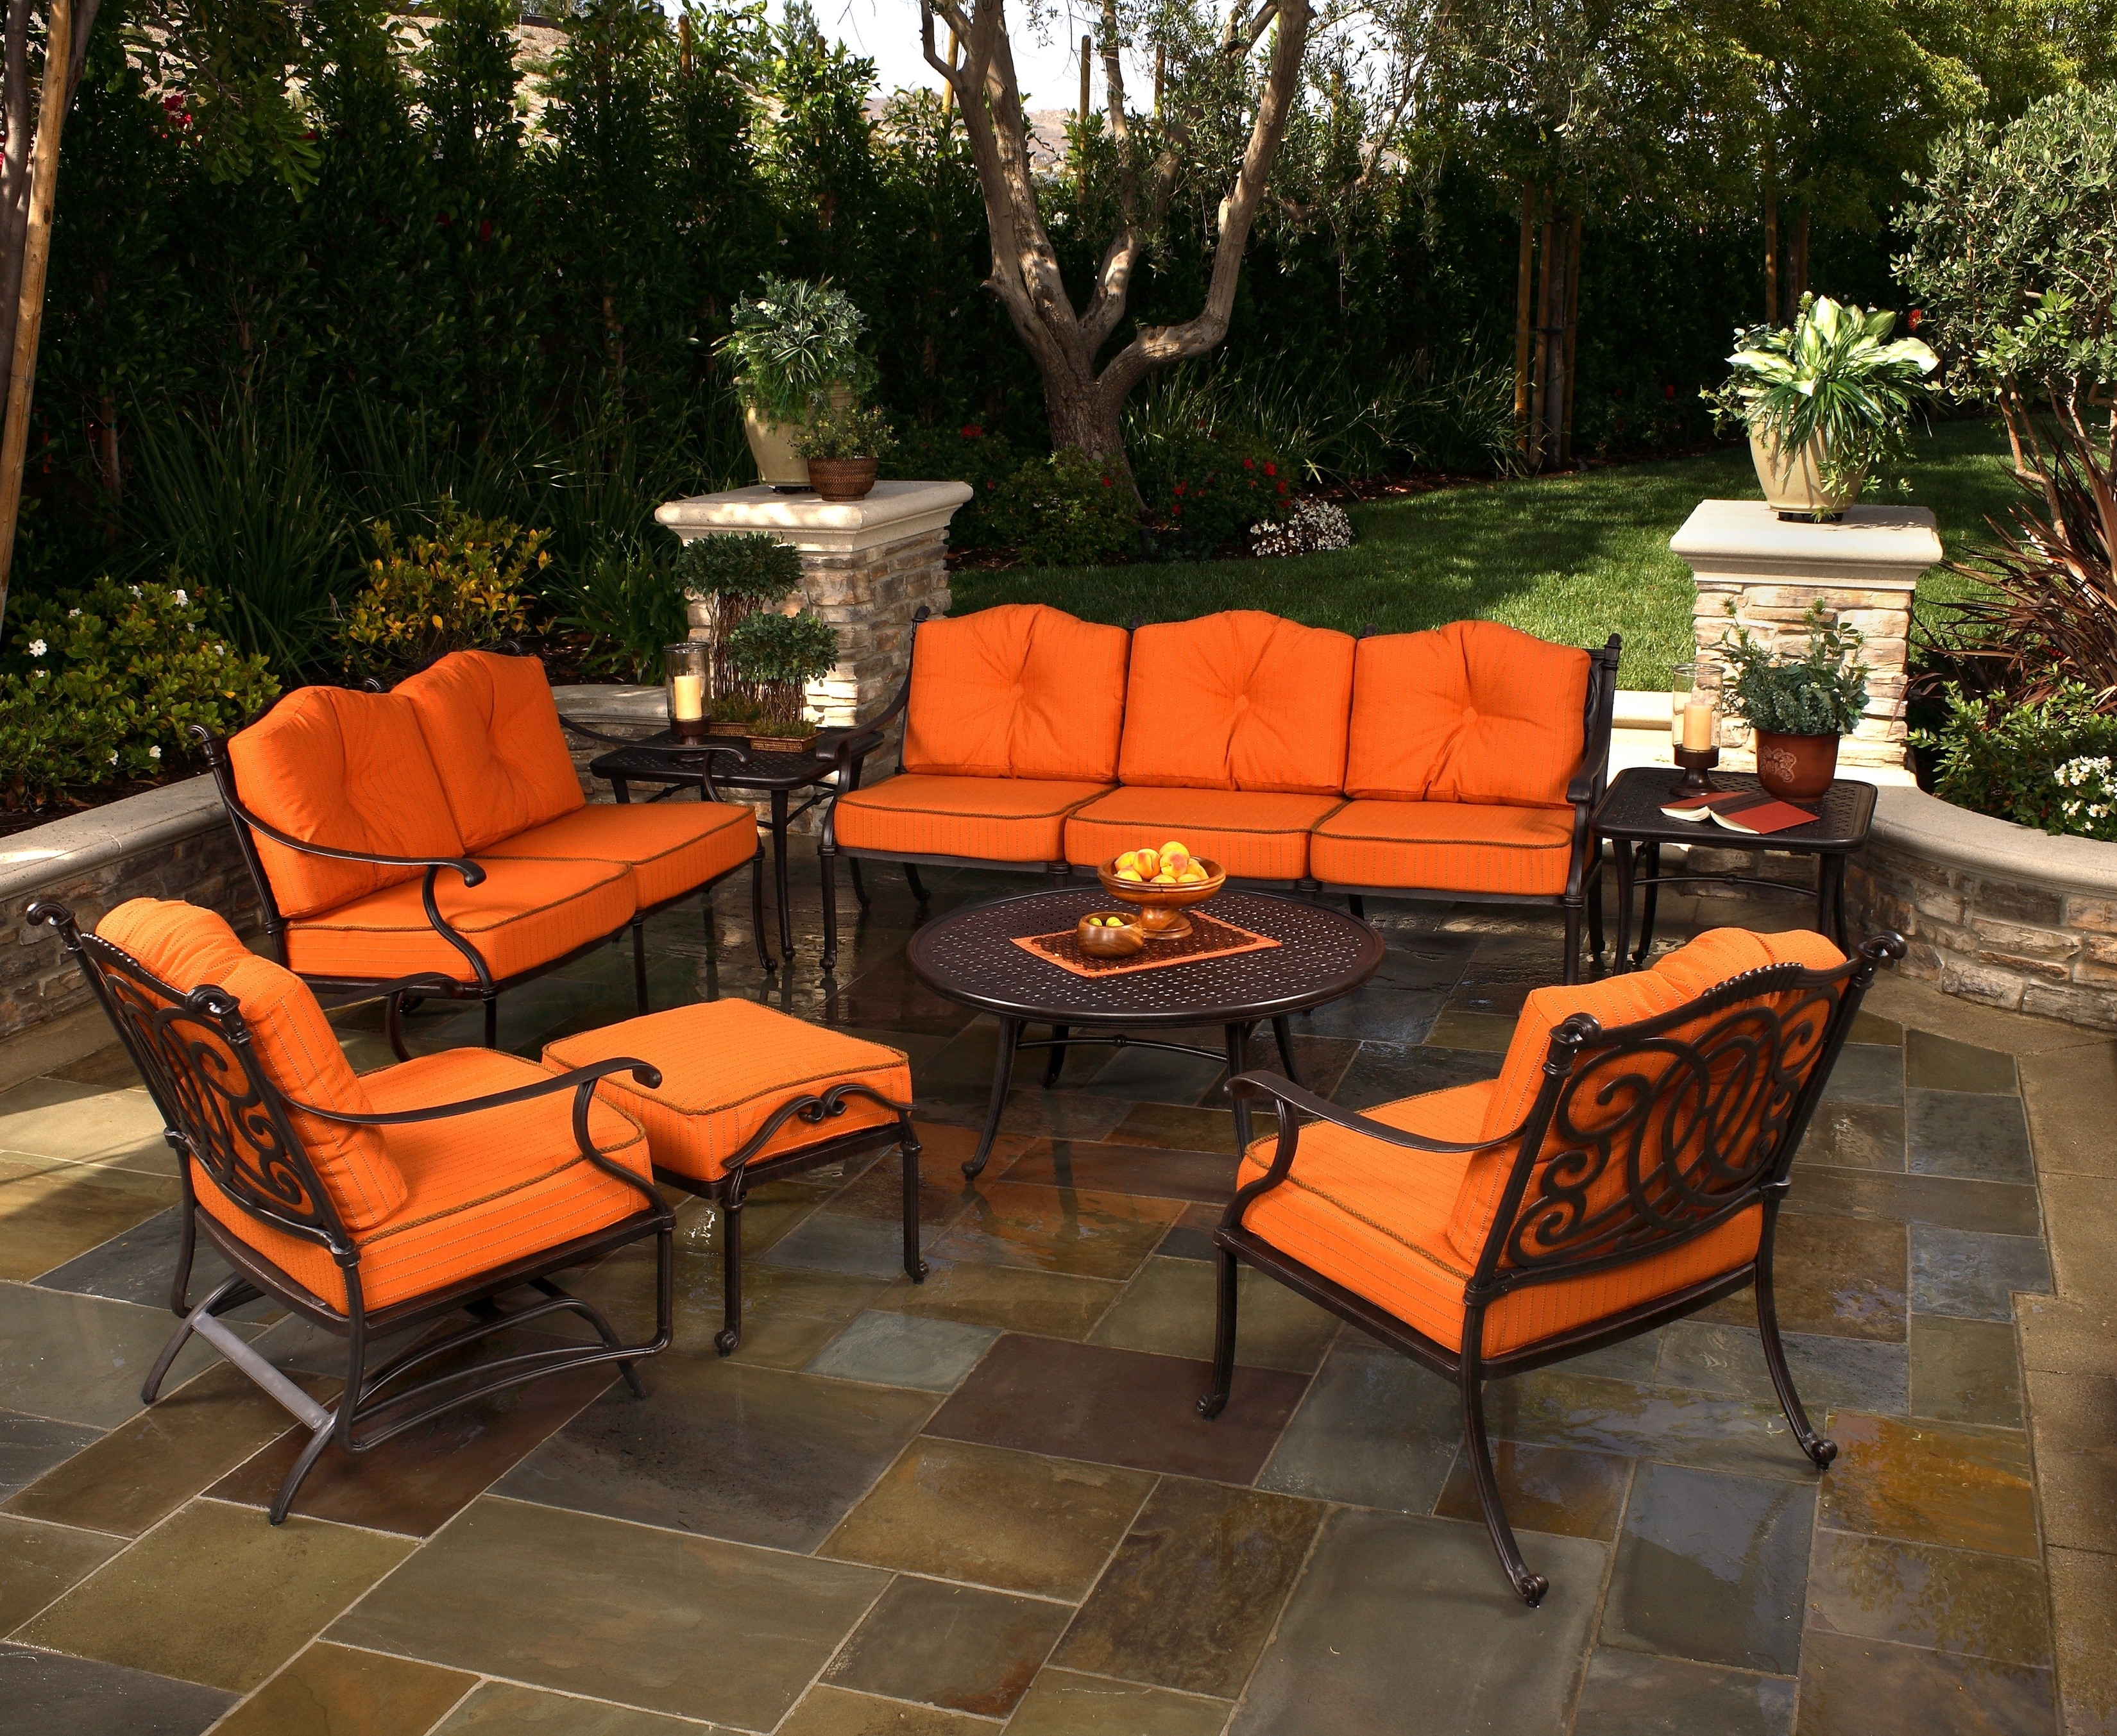 Patio : Vallejo Deep Seating What To Know Before You Purchase An With 2018 Deep Seating Patio Conversation Sets (View 17 of 20)